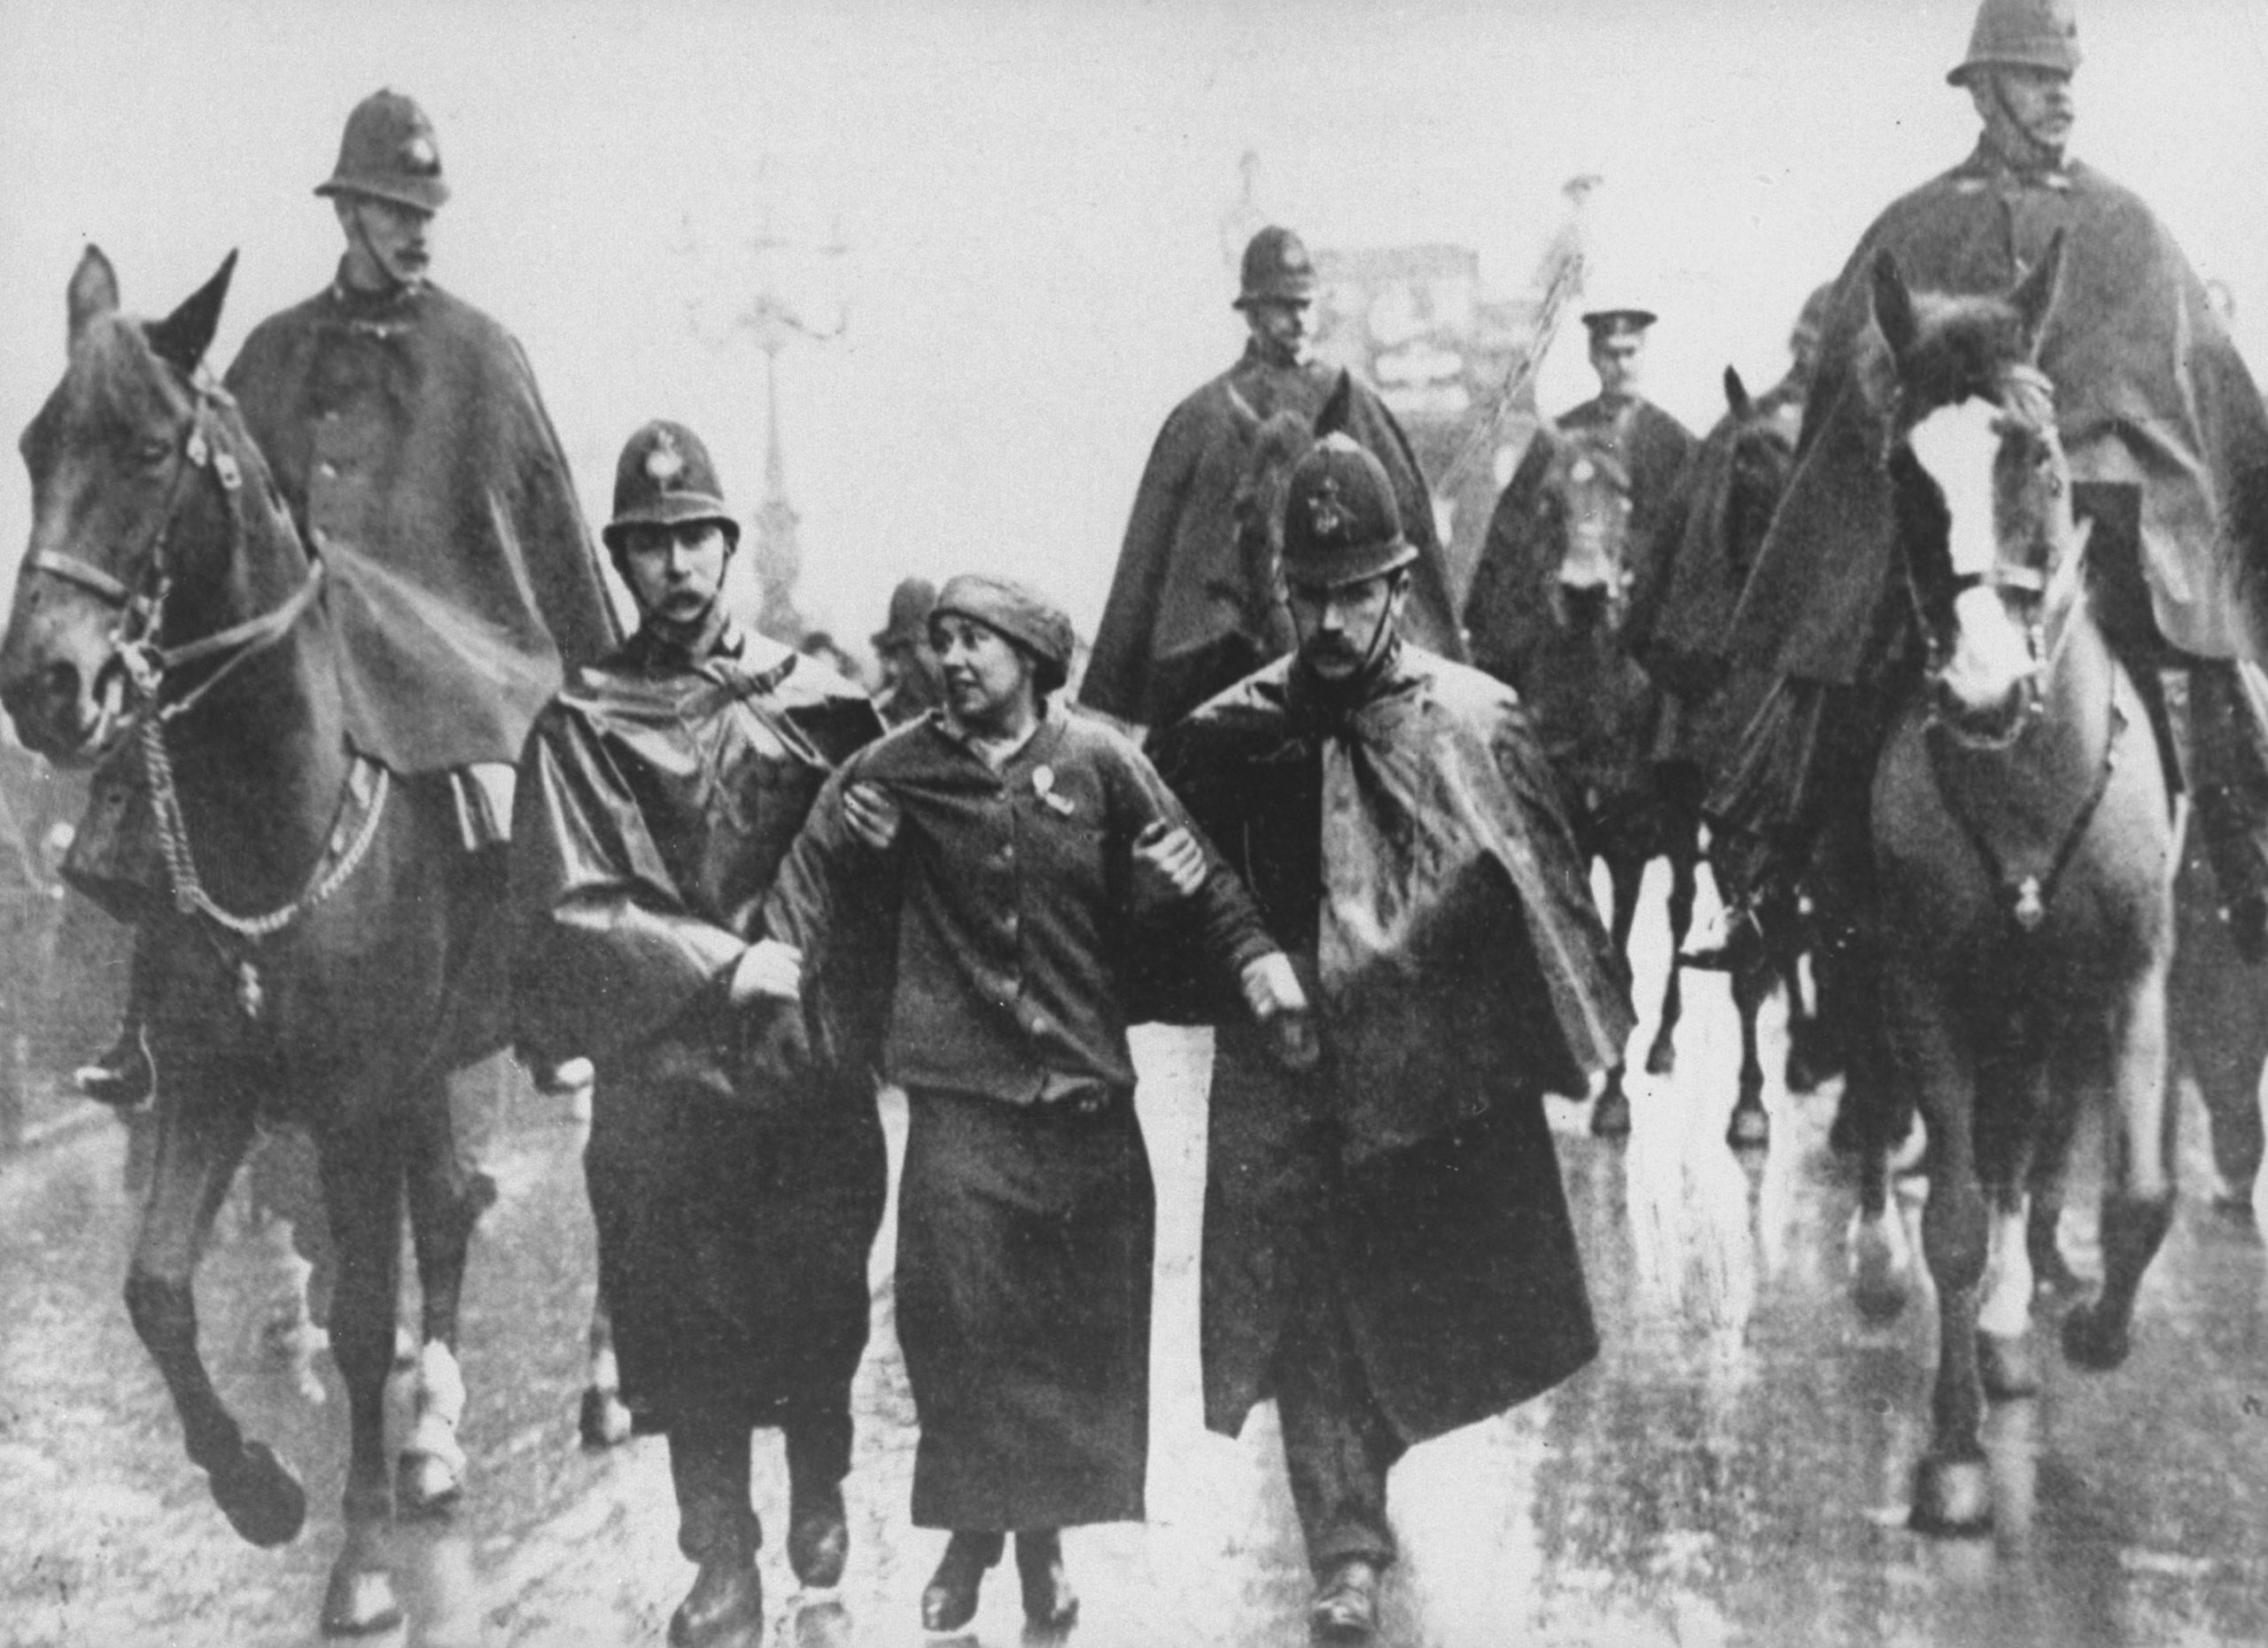 1912: Leading suffragette Sylvia Pankhurst is taken into custody by British police officers during a women's suffrage protest in Trafalgar Square, London, England. In 1829, Robert Peel founded the London Metropolitan Police, the 'bobbies' often regarded as the first modern professional police force. (Photograph by Time Life Pictures/ Mansell/ The LIFE Picture Collection via Getty Images)